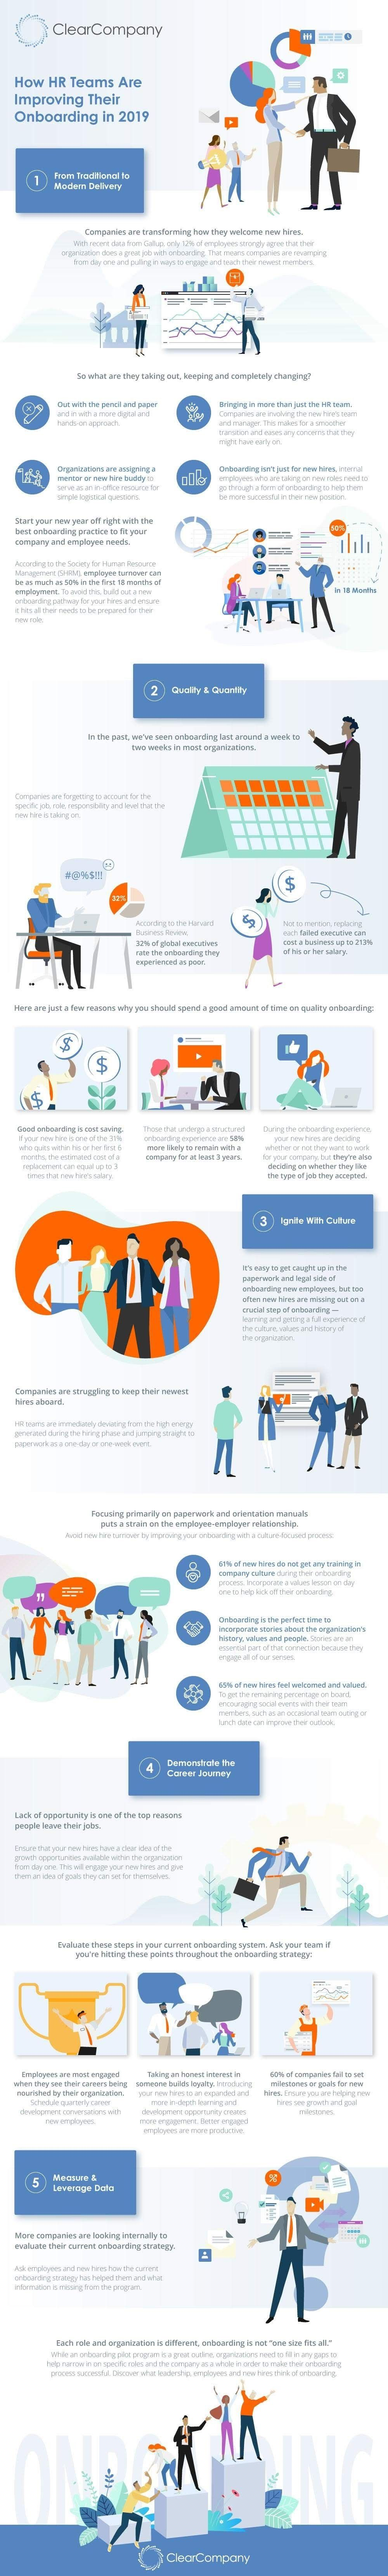 How Do Hr Teams Improve Onboarding In 2019 Infographic